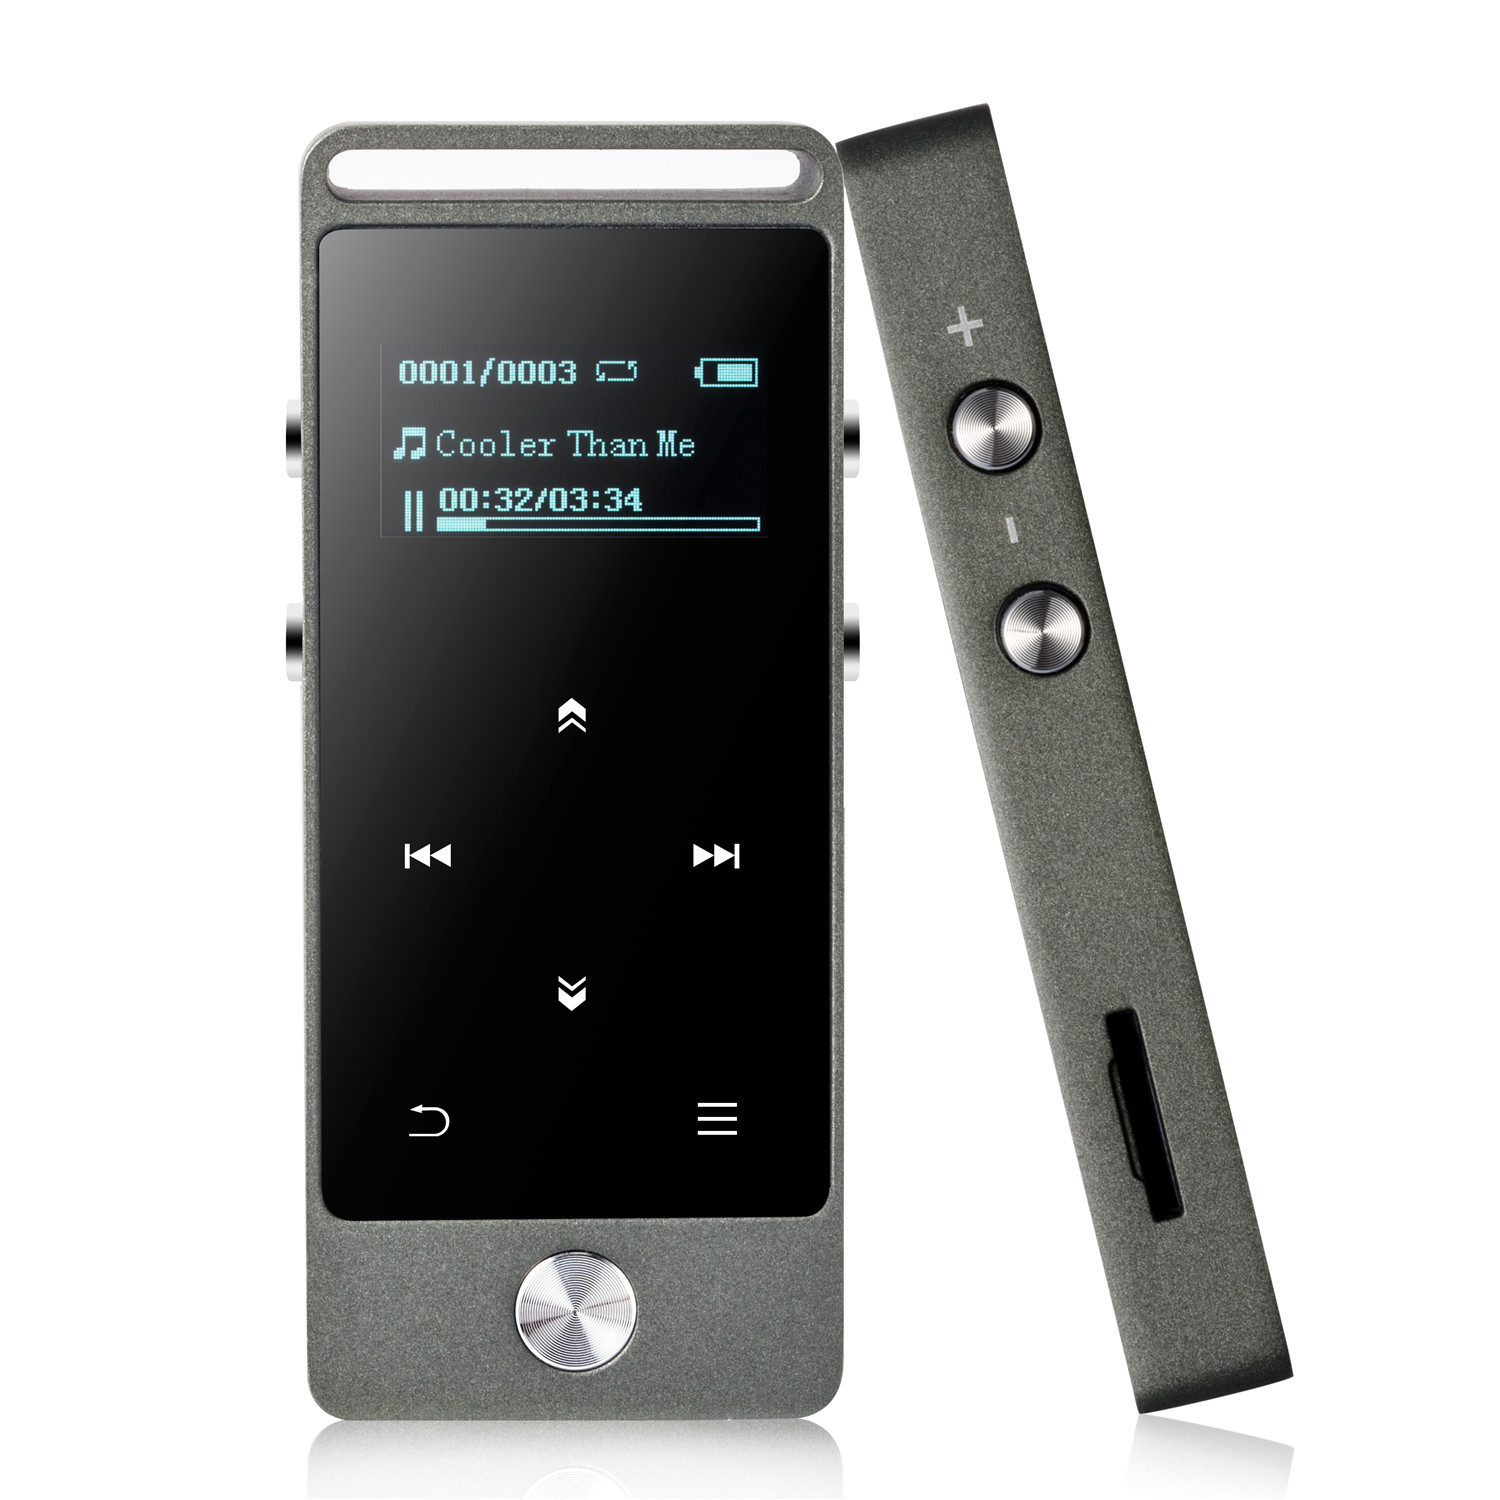 AGPTEK 8GB MP3 Player Lossless Sound Music Player with Independent Lock